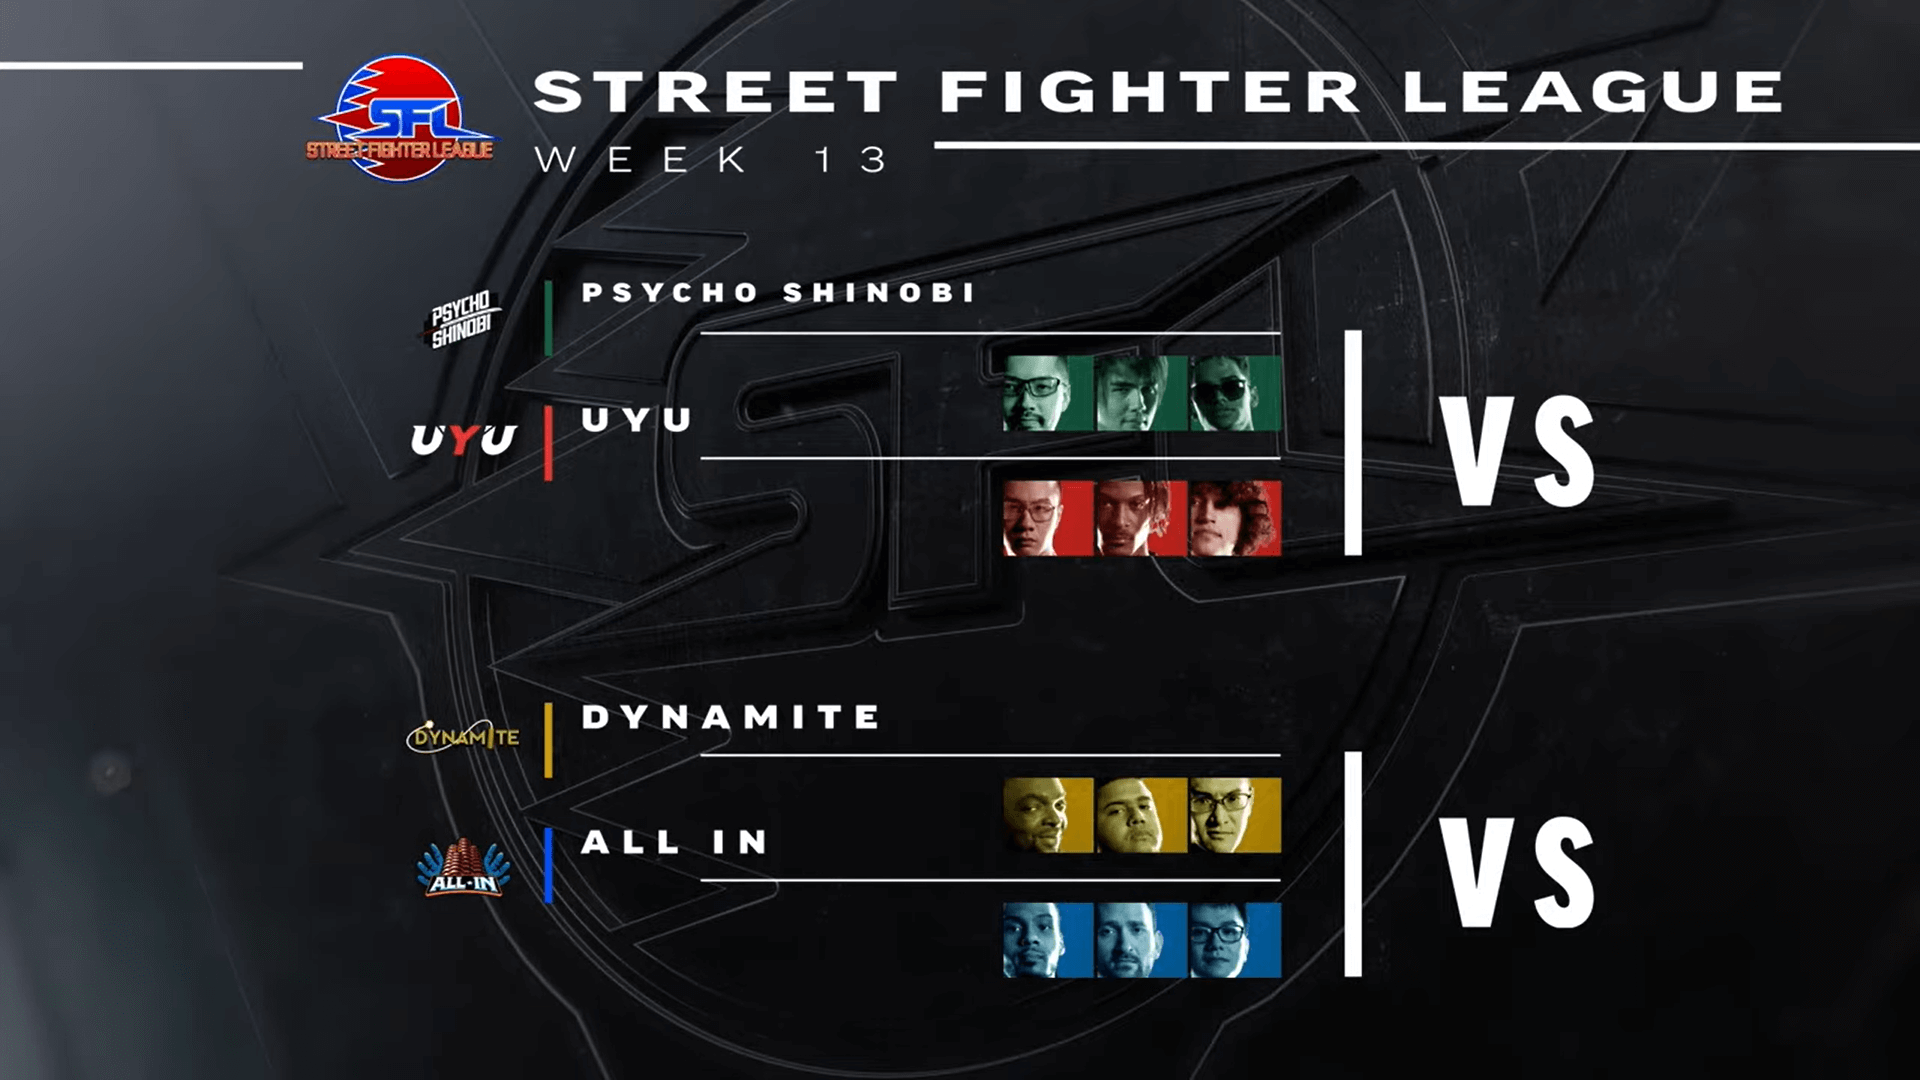 Fighting esports matches of Street Fighter League Week 13